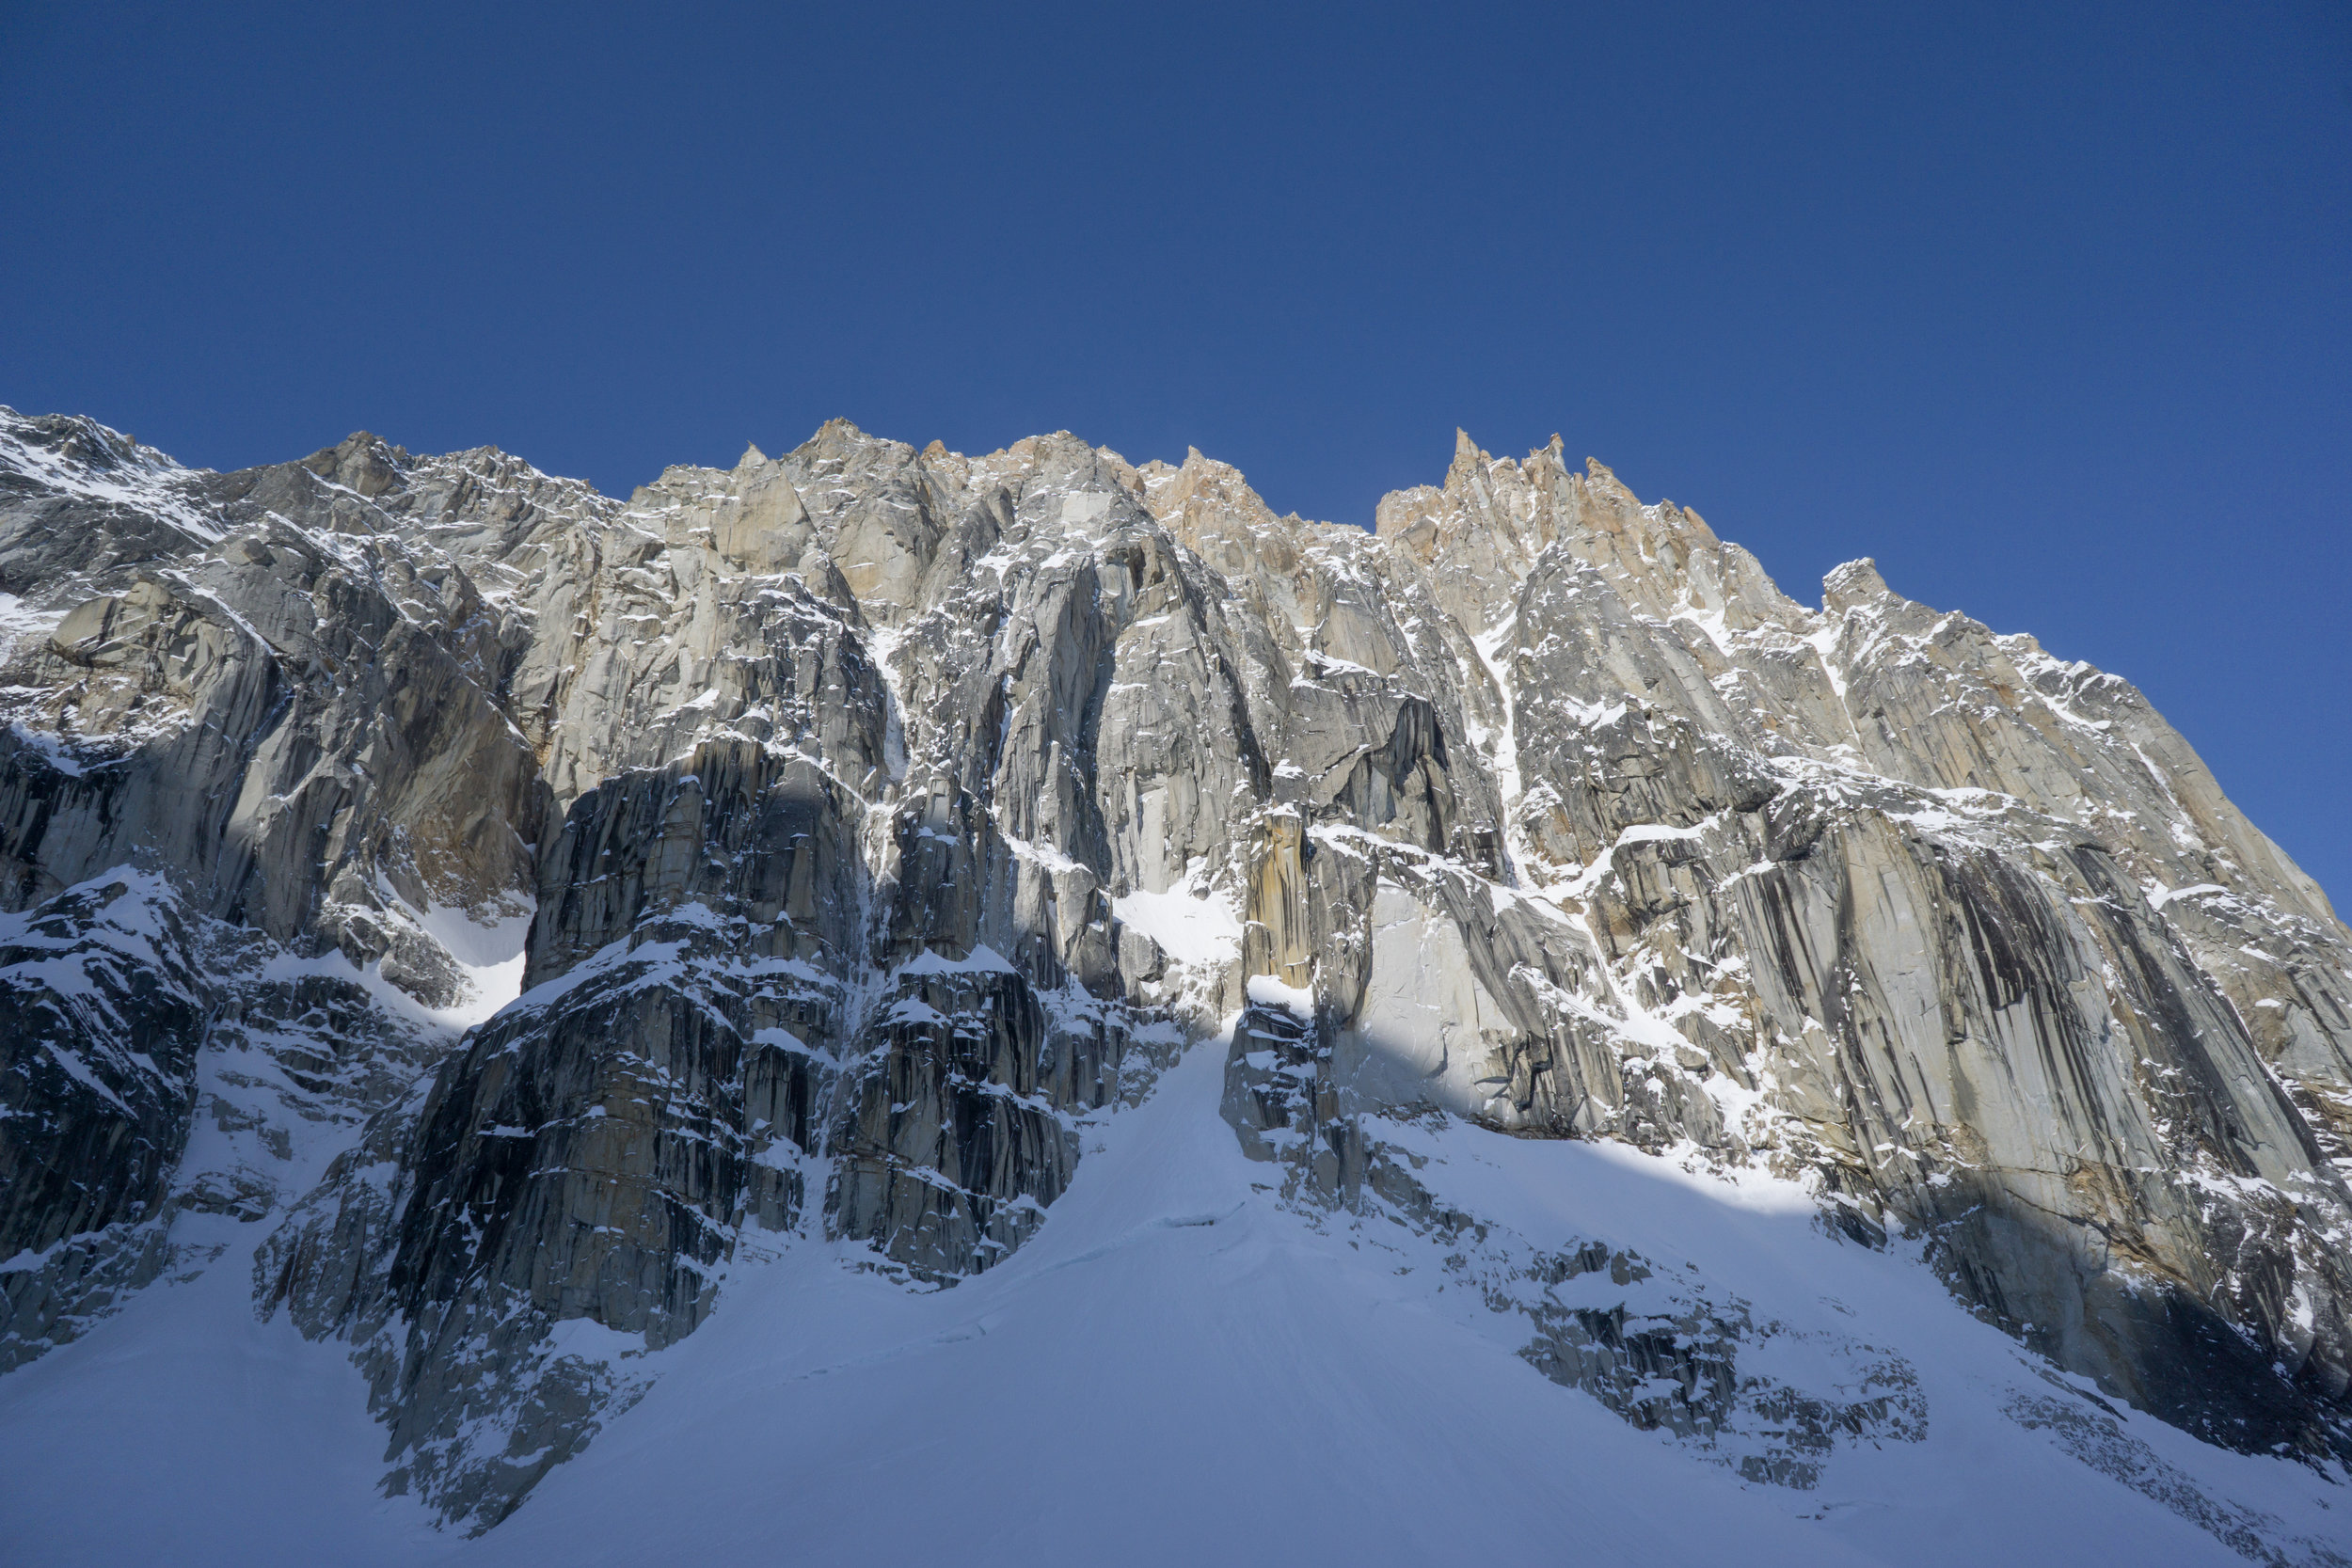 We climbed the thin couloir streaks just left of centre. To the right of the big grey rock scar is Hoar of Babylon.